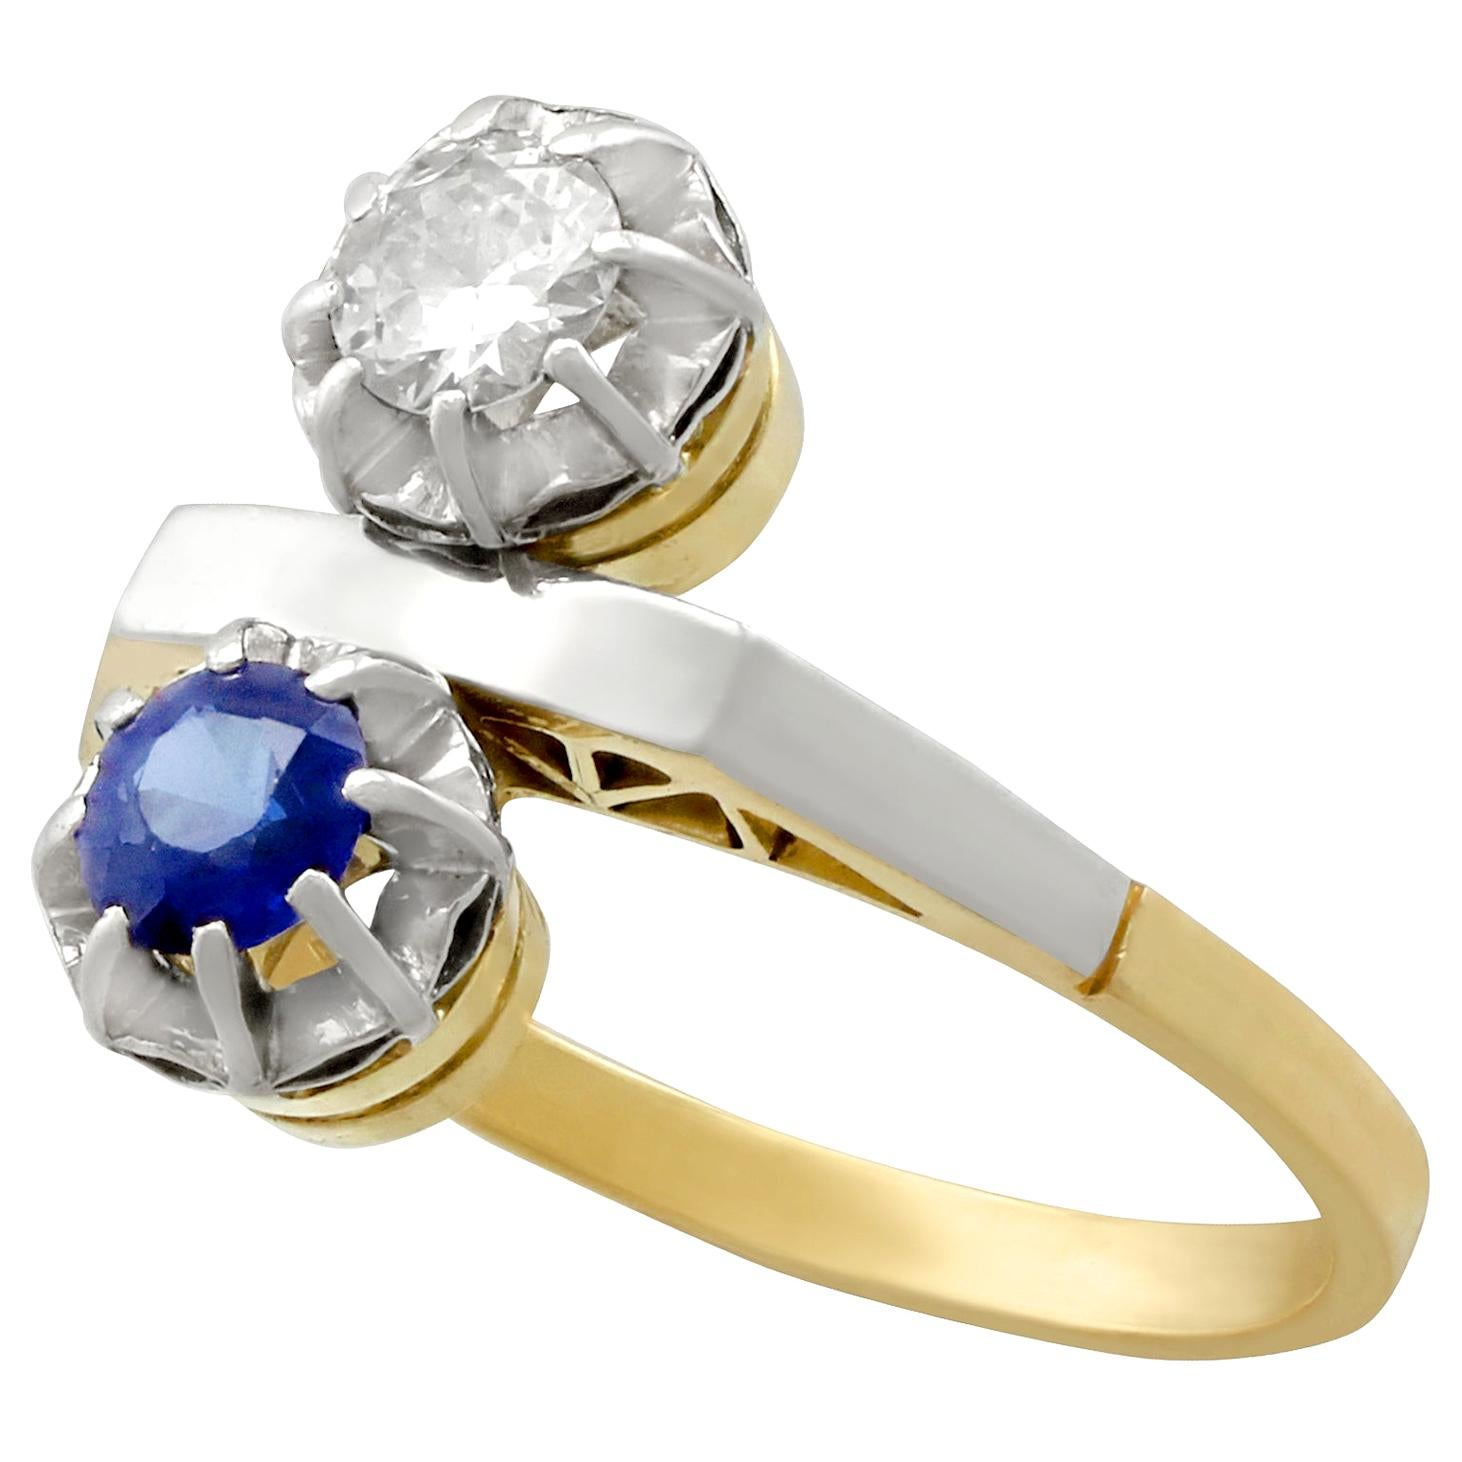 1950s Sapphire Diamond and Yellow Gold Cocktail Ring